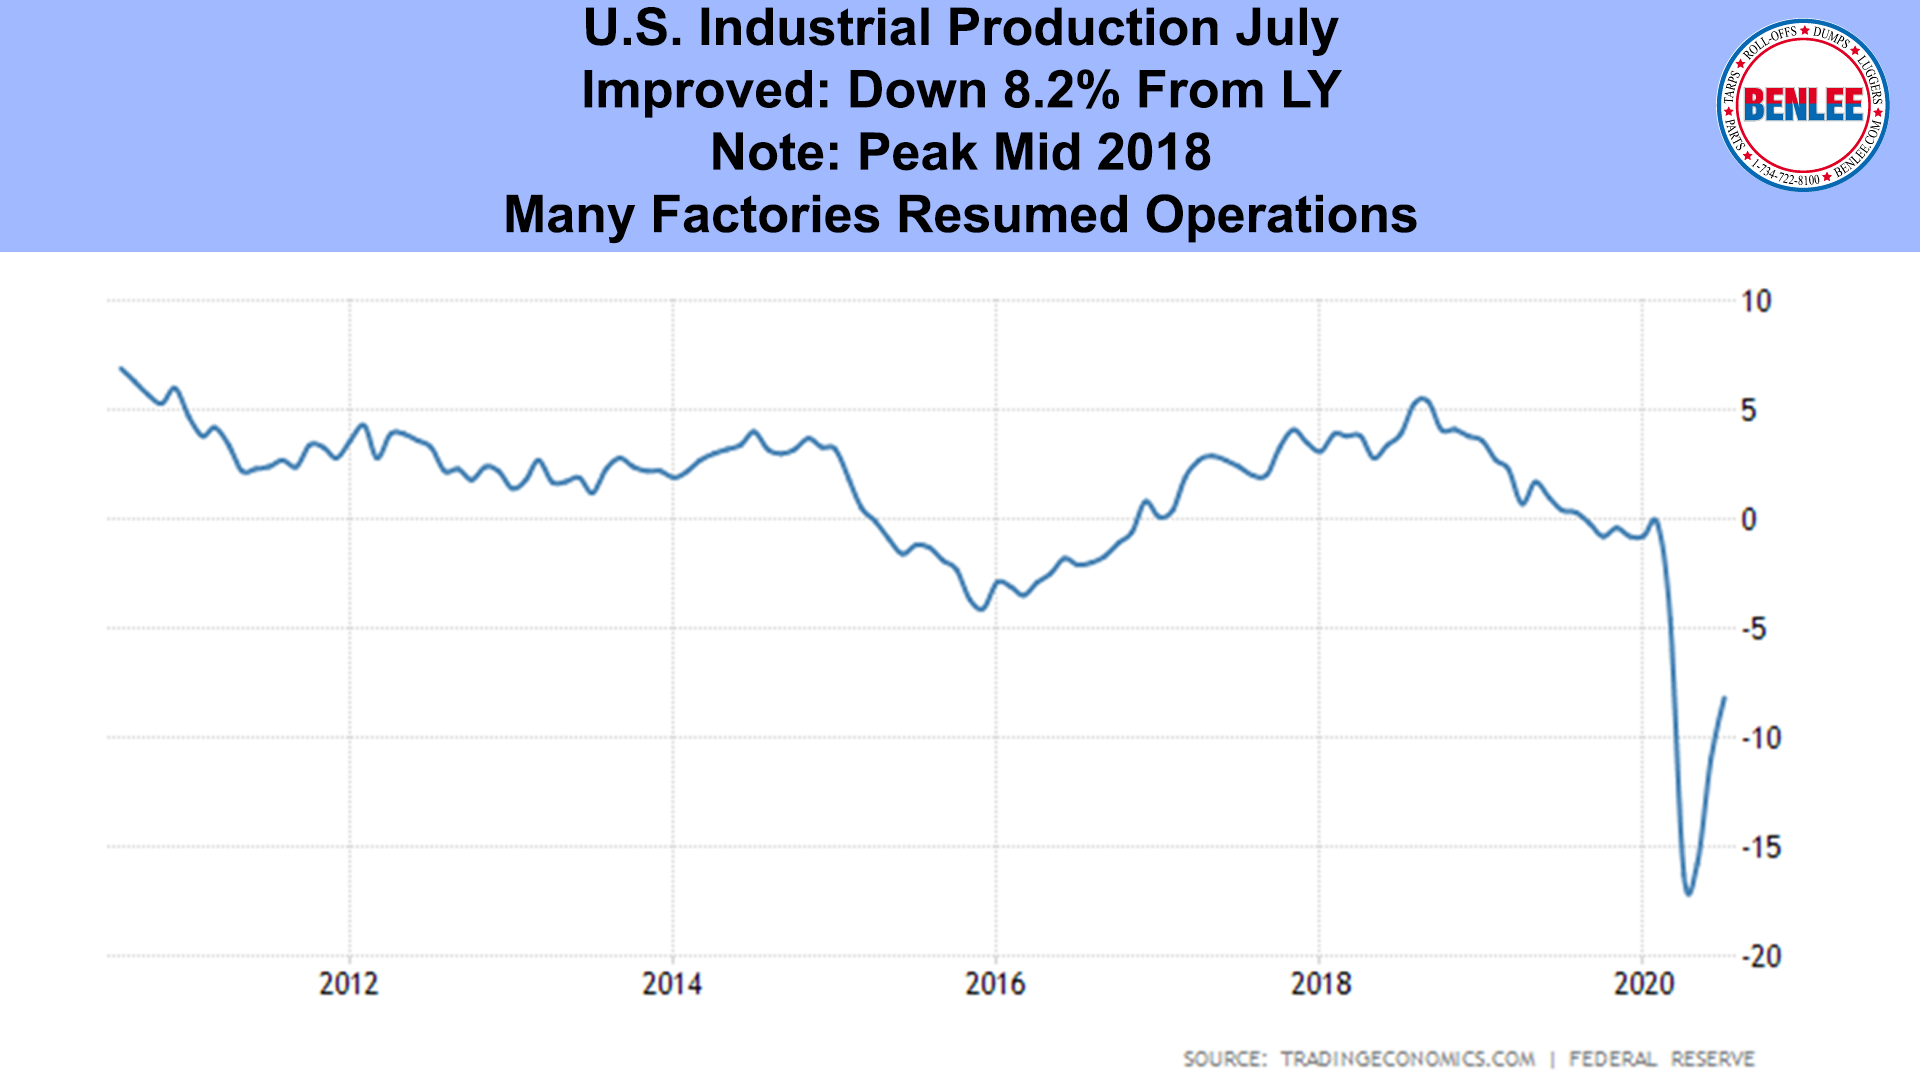 U.S. Industrial Production July